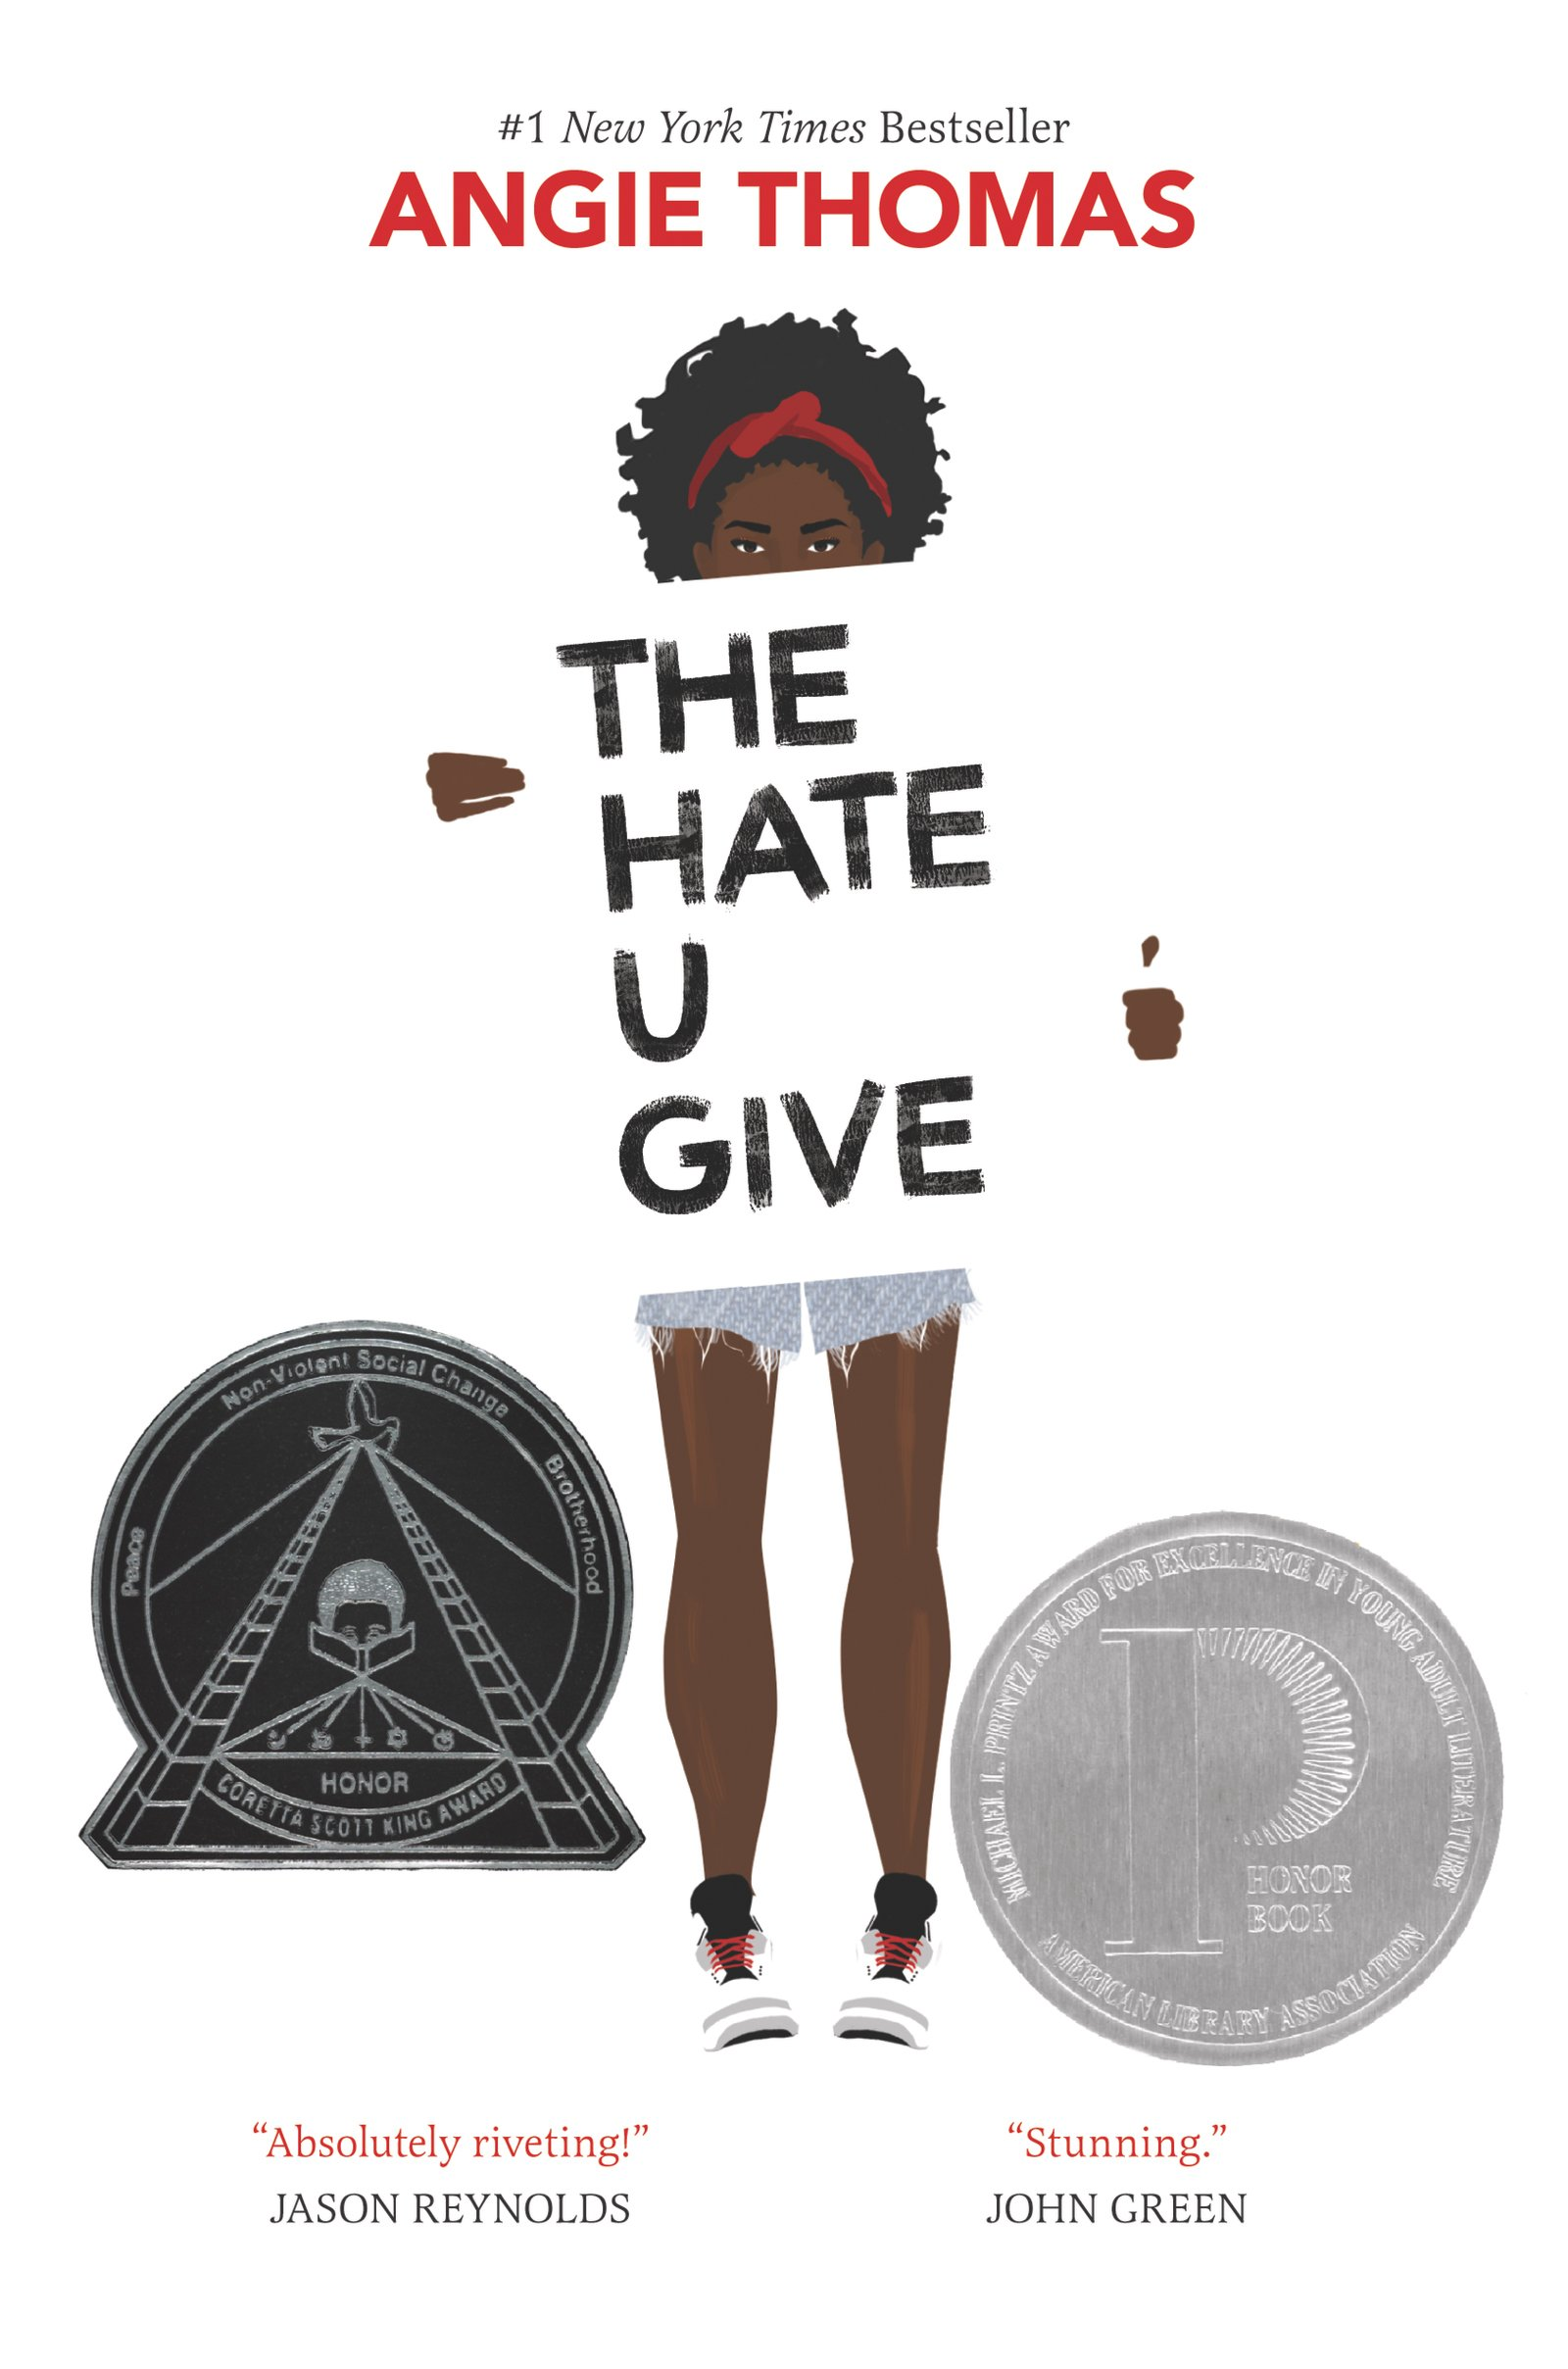 A photo of the book cover for The Hate U Give